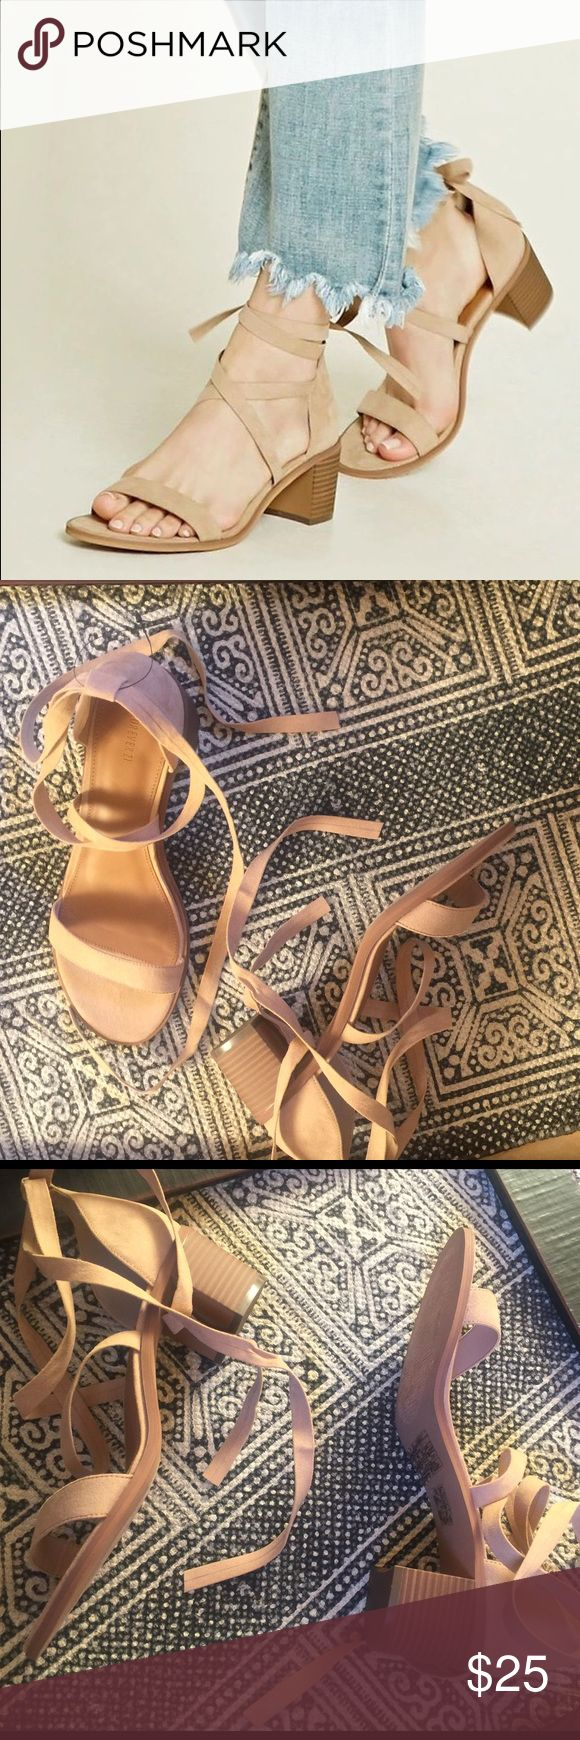 Gorgeous nude color ankle wrap sandals block heel Brand spankin new ! Never worn only tried on in store these are a beautiful nude suede with perfect sized block heel wraps up the ankle Forever 21 Shoes Sandals